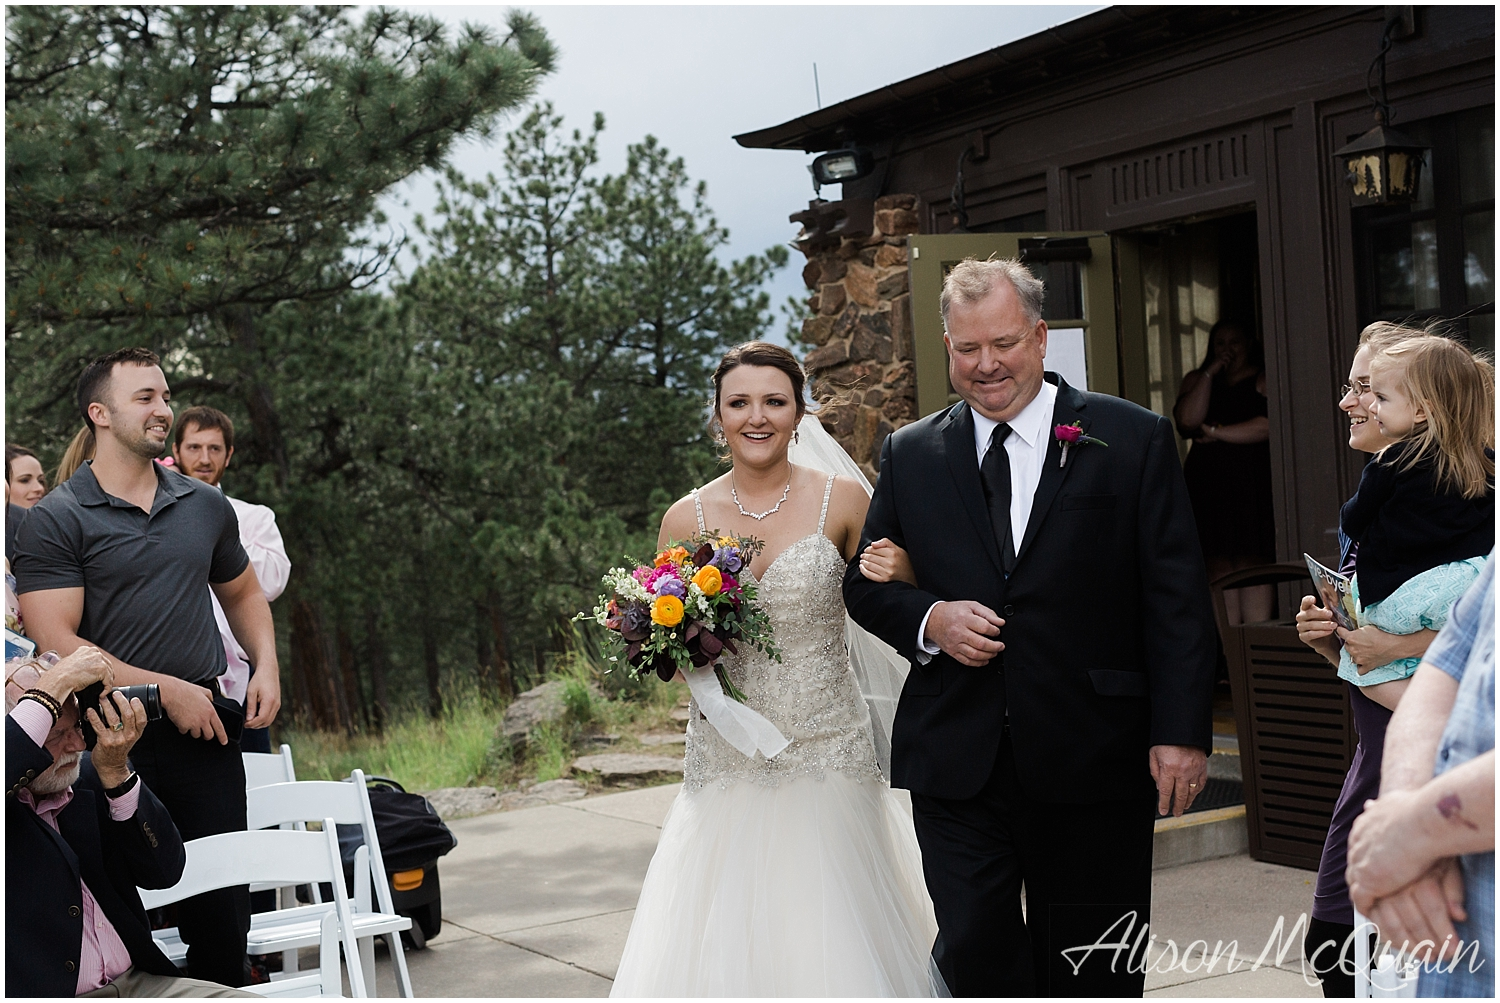 AandJ_Wedding_BoettcherMansion_Golden_Colorado_6_2018_AMP_0032.jpg